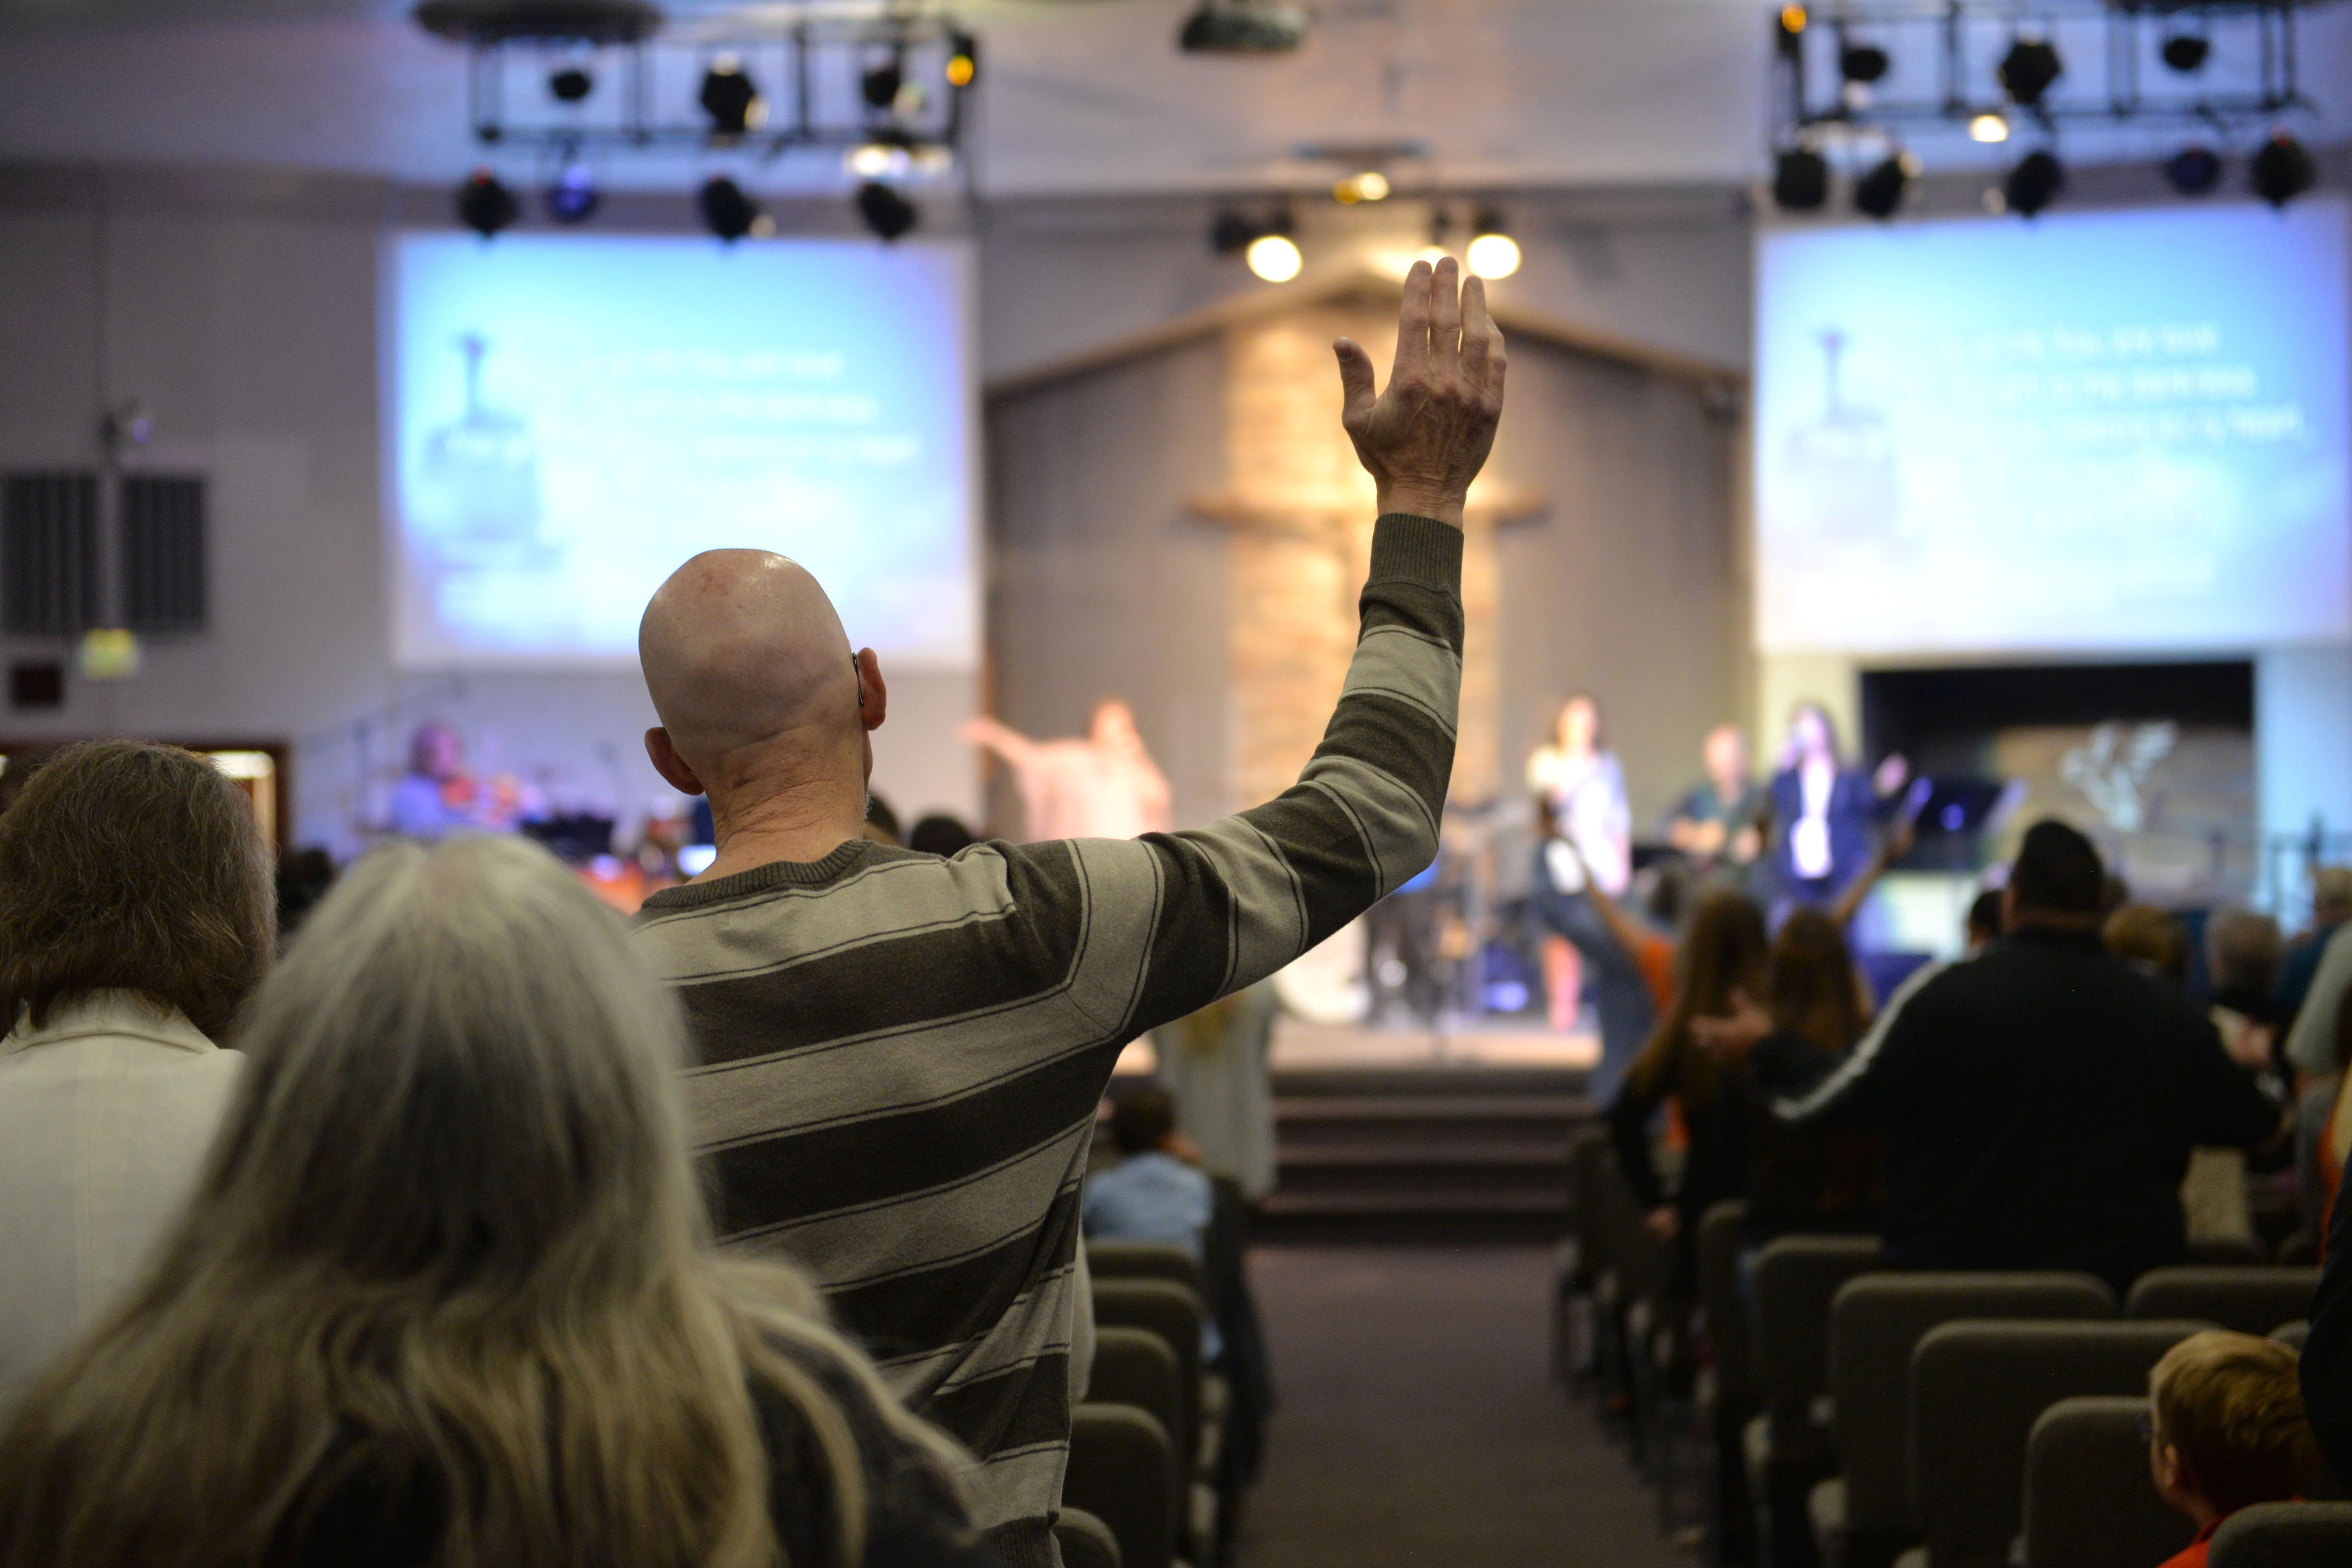 <p>Worshipping at Agape Fellowship church in Pueblo.</p>